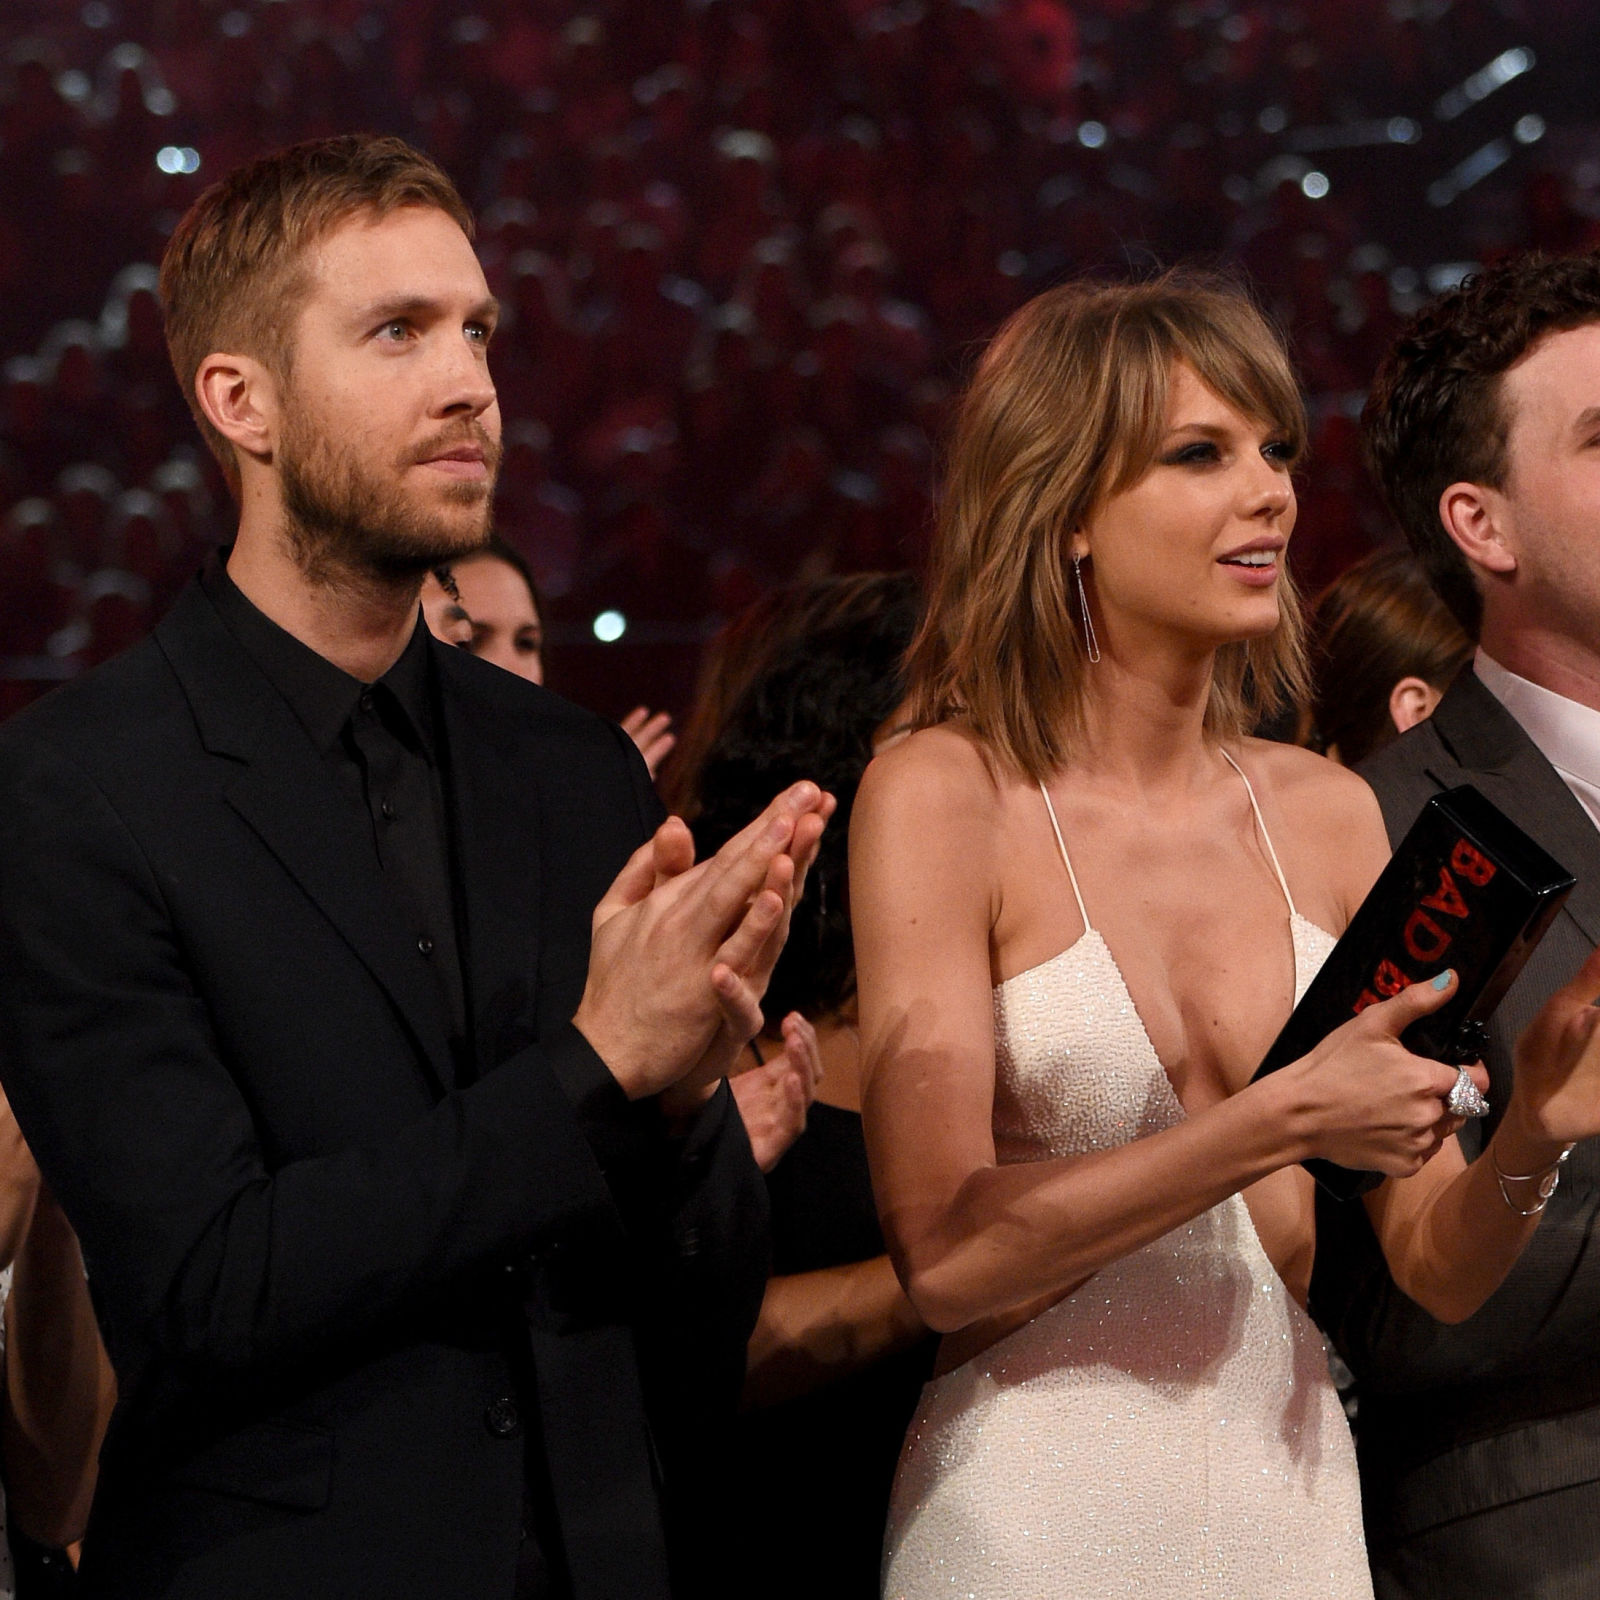 Taylor Swift And Calvin Harris Married: Magazine Claims That Taylor Swift And Calvin Harris Are